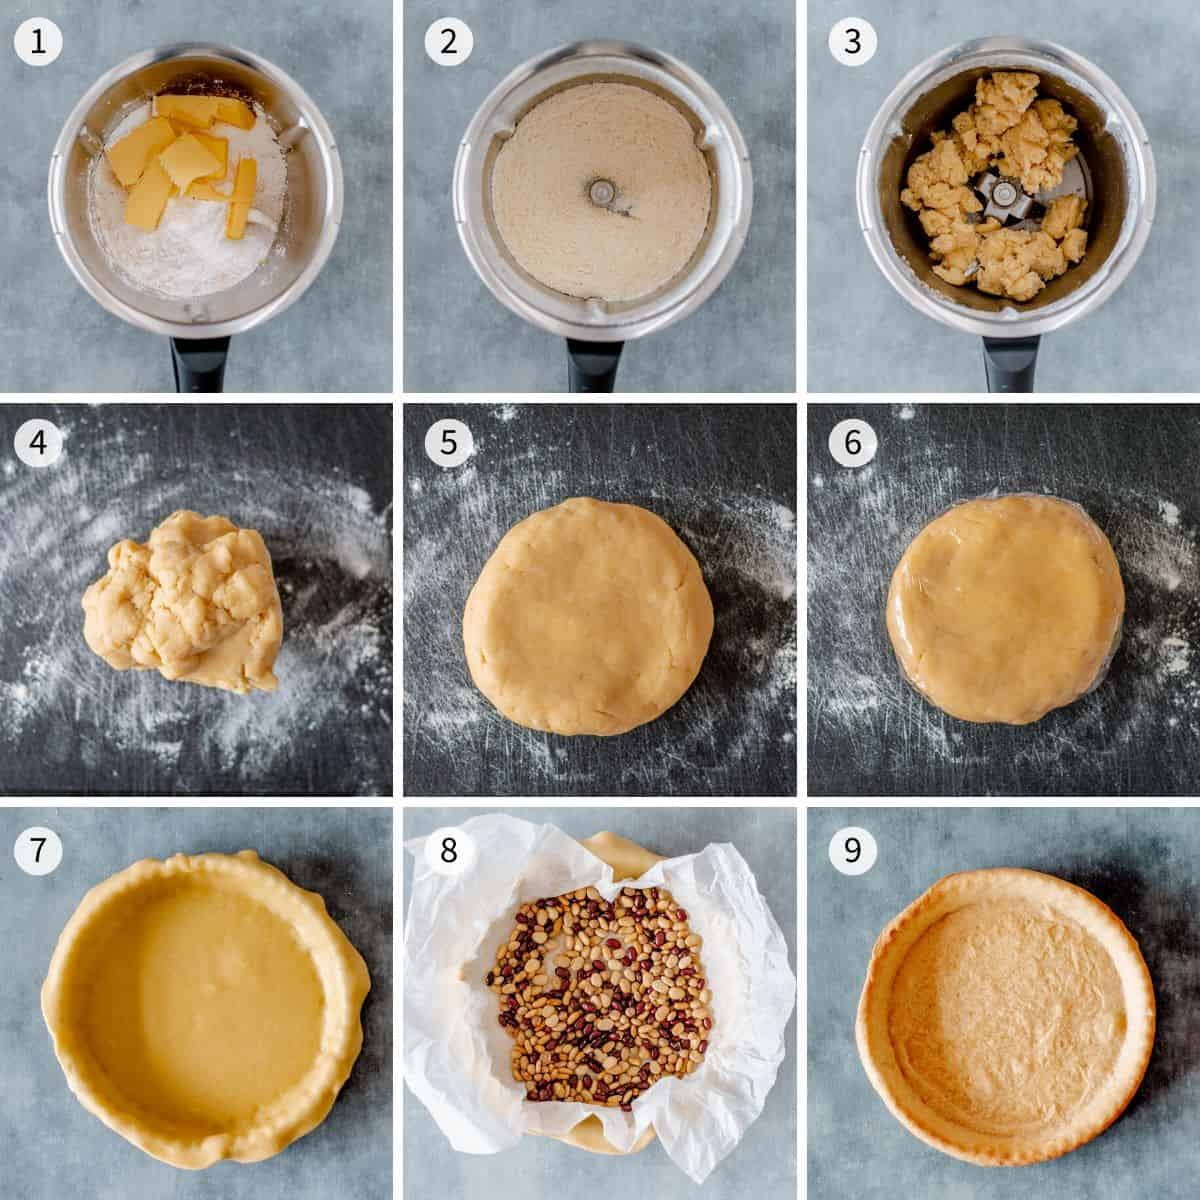 9 step by step photos explaining how to make sweet shortcrust pasty in the Thermomix